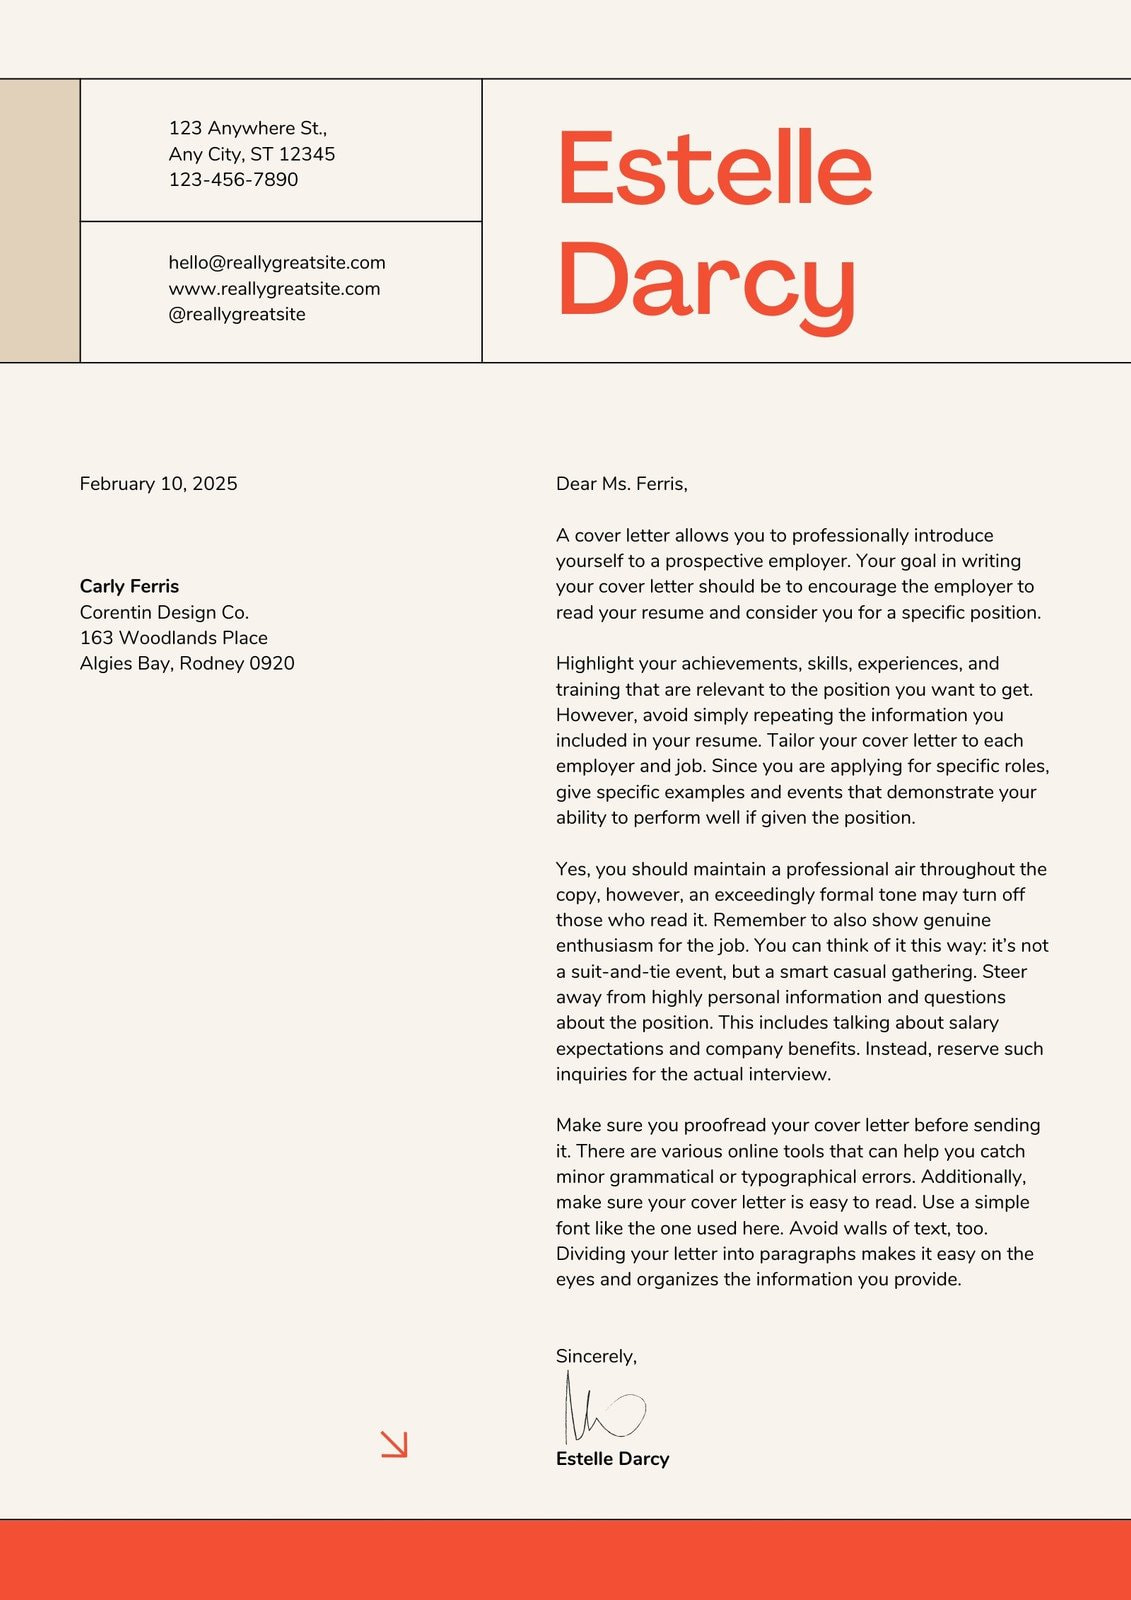 Beige and Red Playful Swiss Student Internship Cover Letter